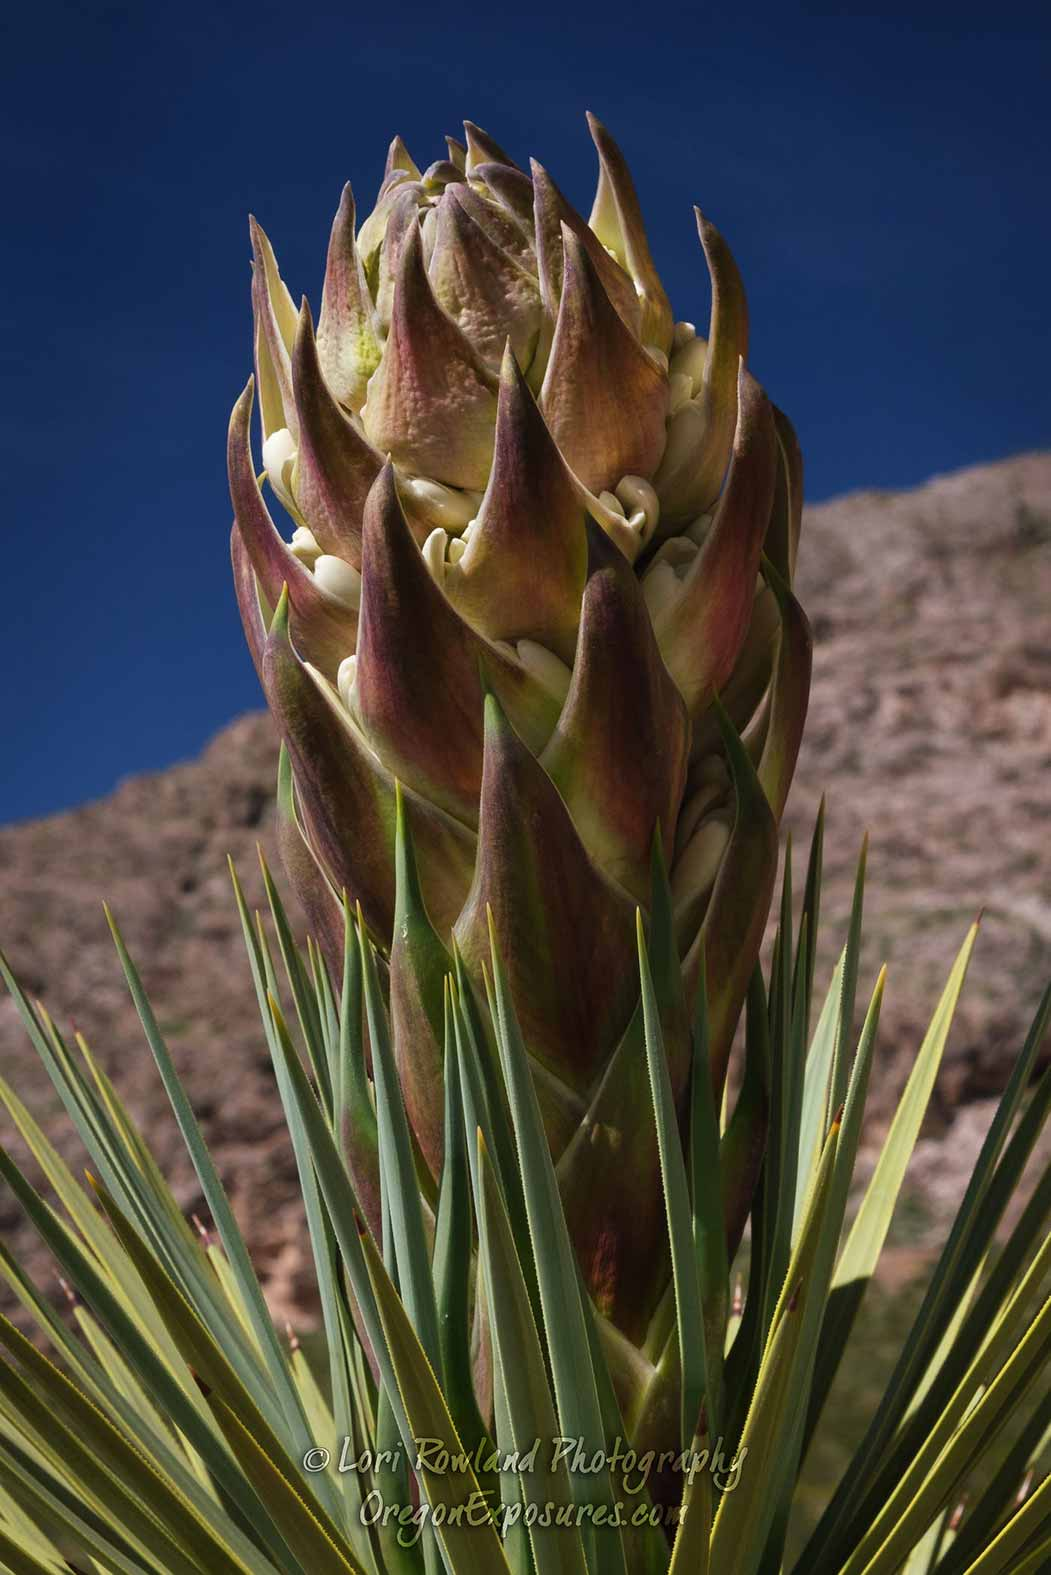 A Joshua Tree bud about to bloom.